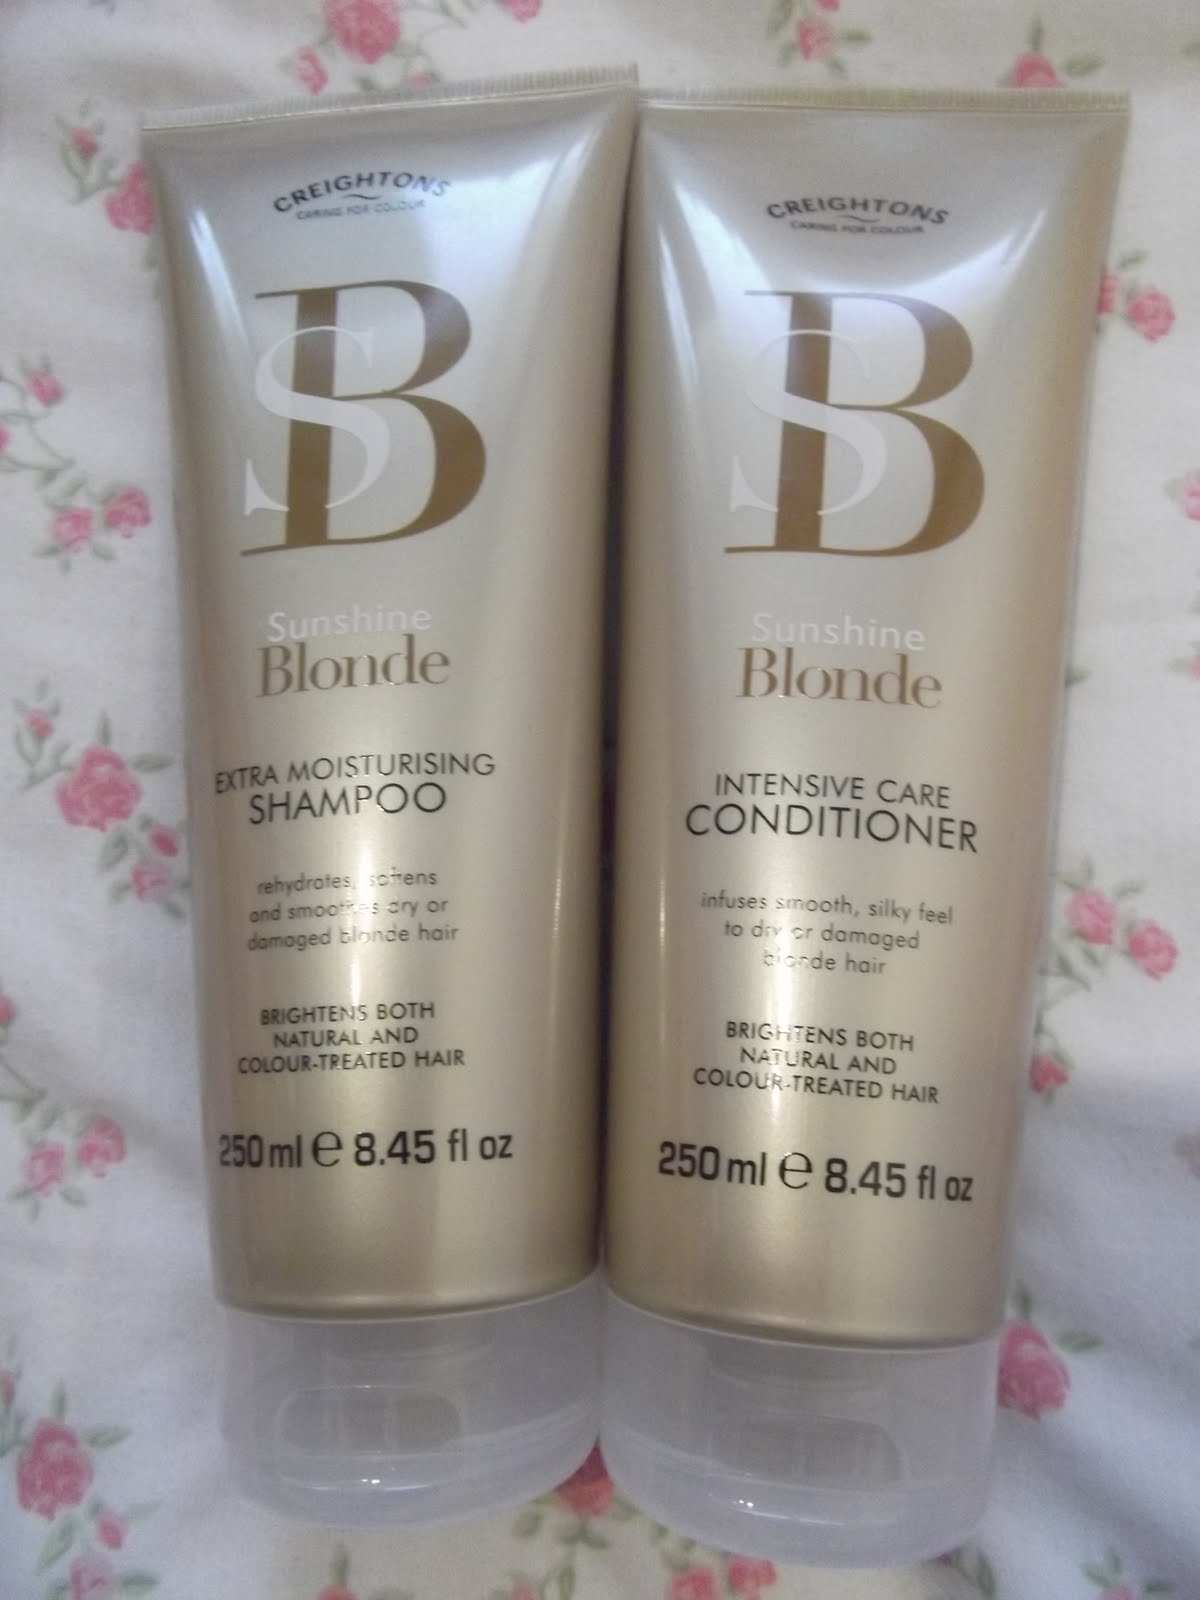 Aldi Shampoo Range Sophia Bella Bargain Of The Week Creightons Sunshine